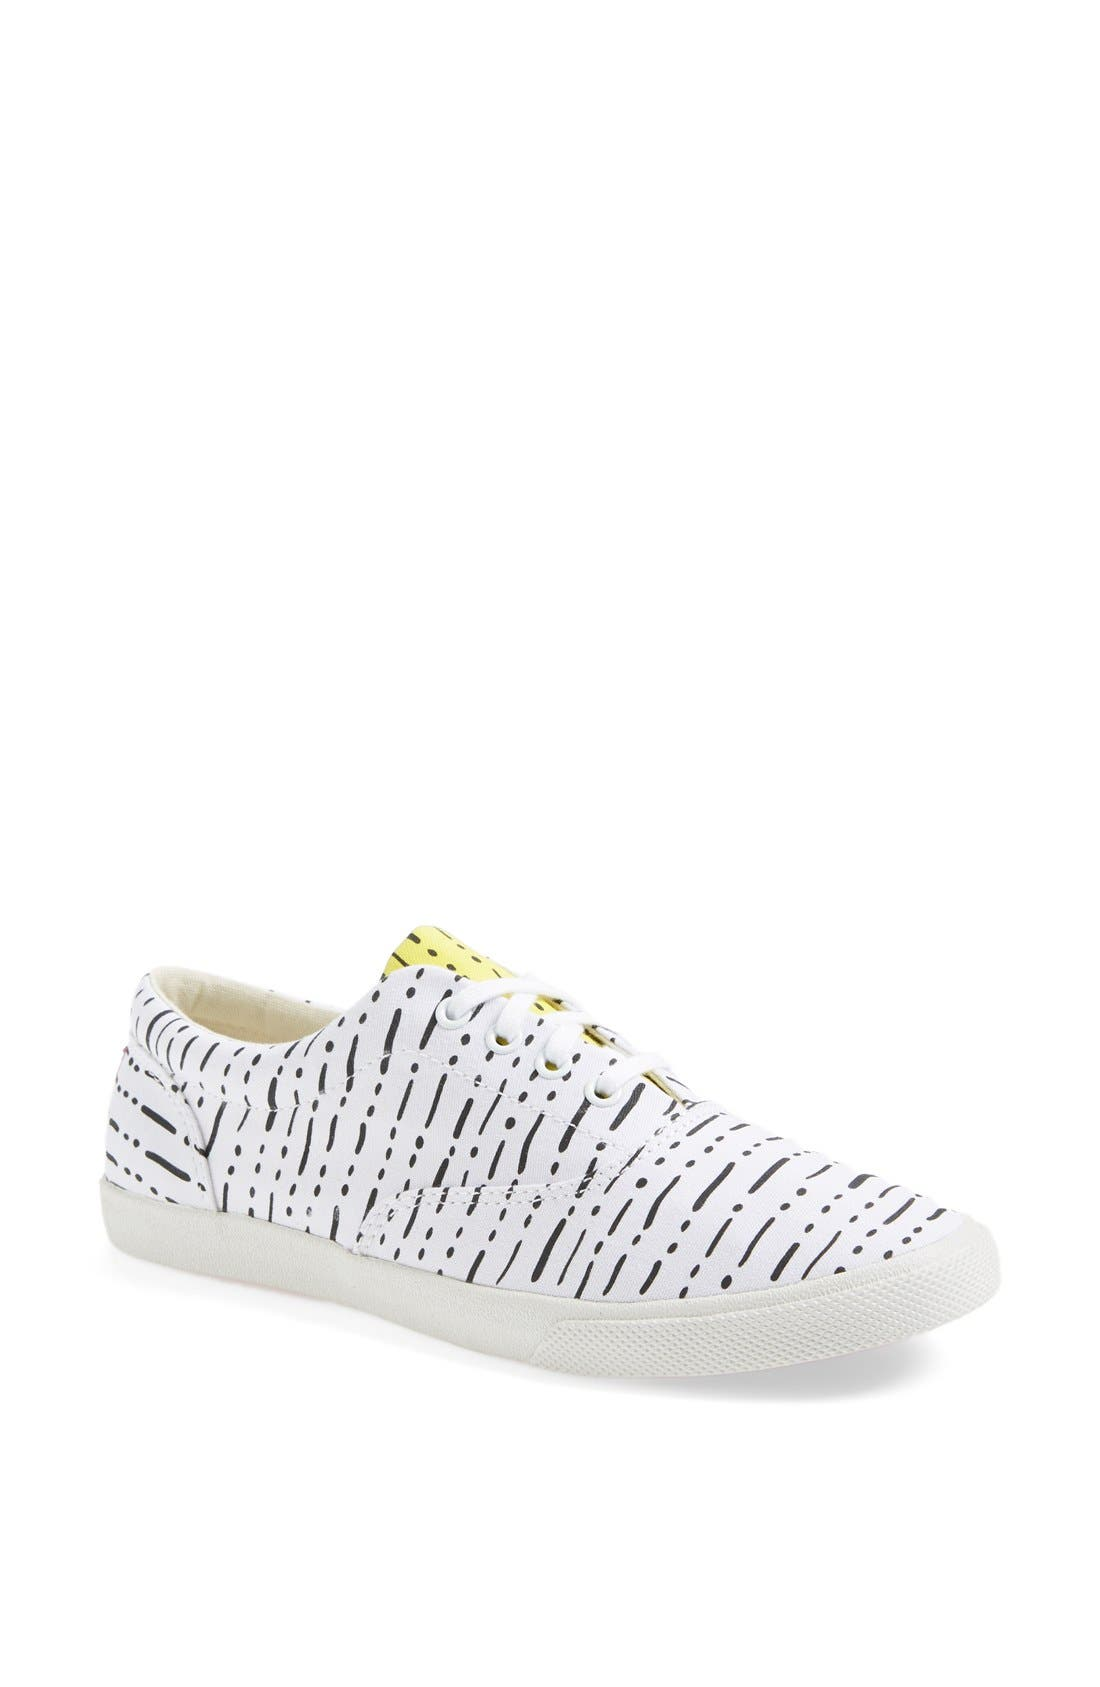 Main Image - BucketFeet 'The Dro' Sneaker (Women)